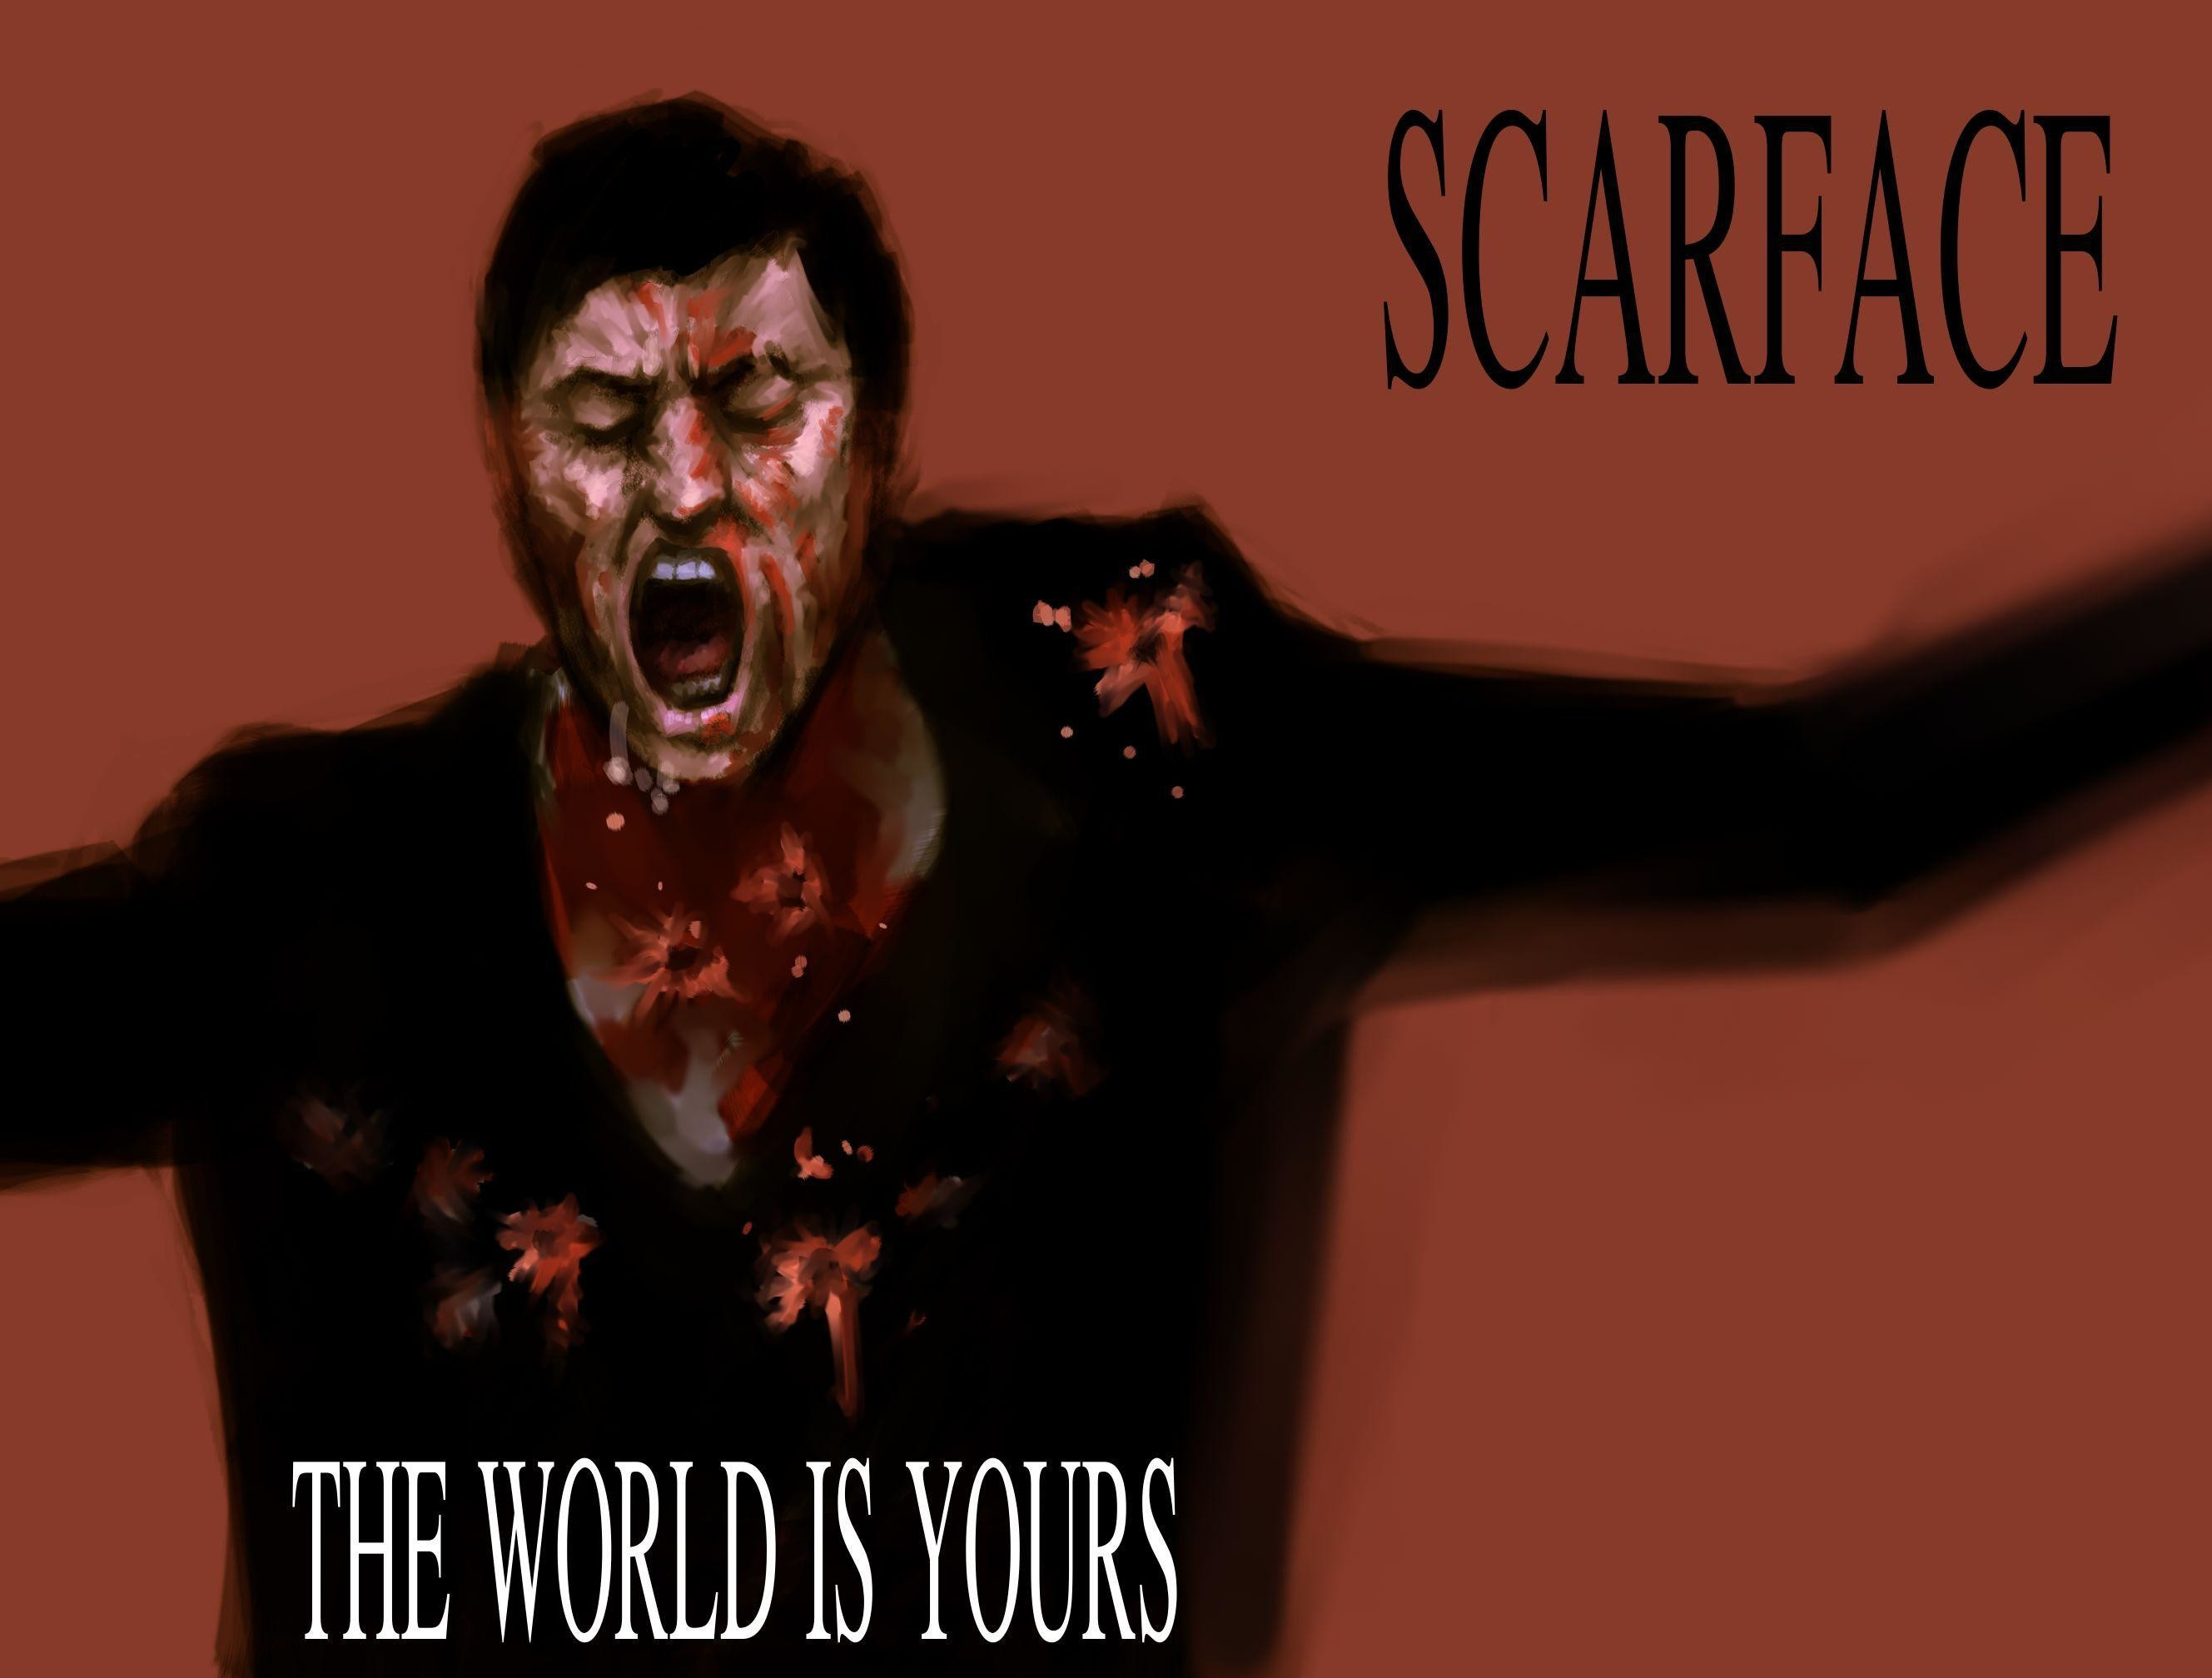 2657x2016 Scarface The World is Yours Wallpapers - HD Wallpapers Inn